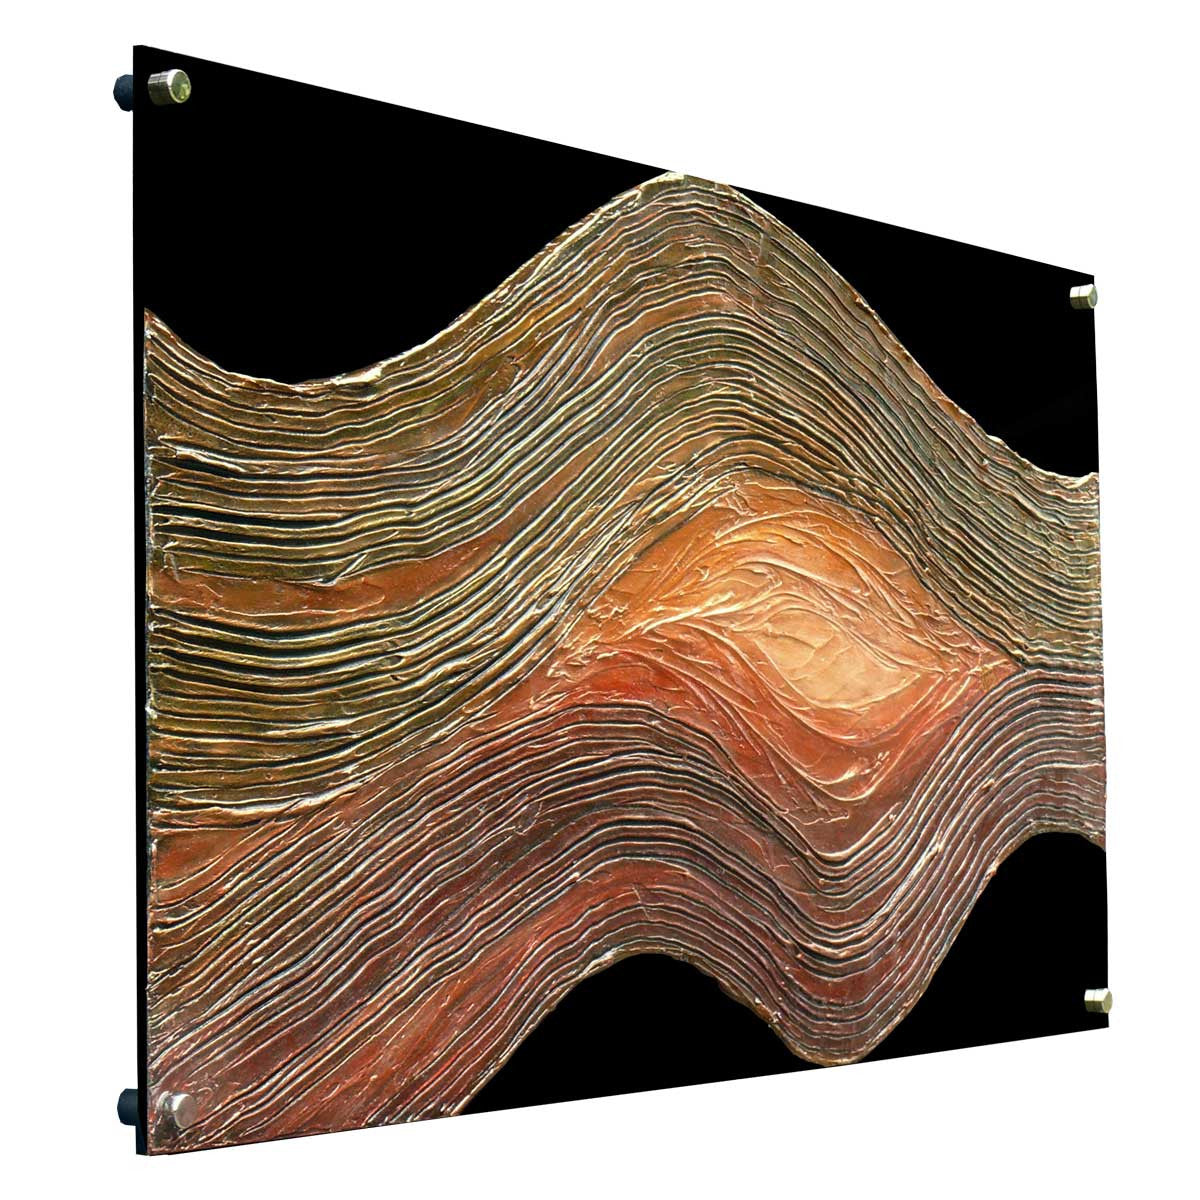 'Soul Wave' curved abstract art on black plexiglass